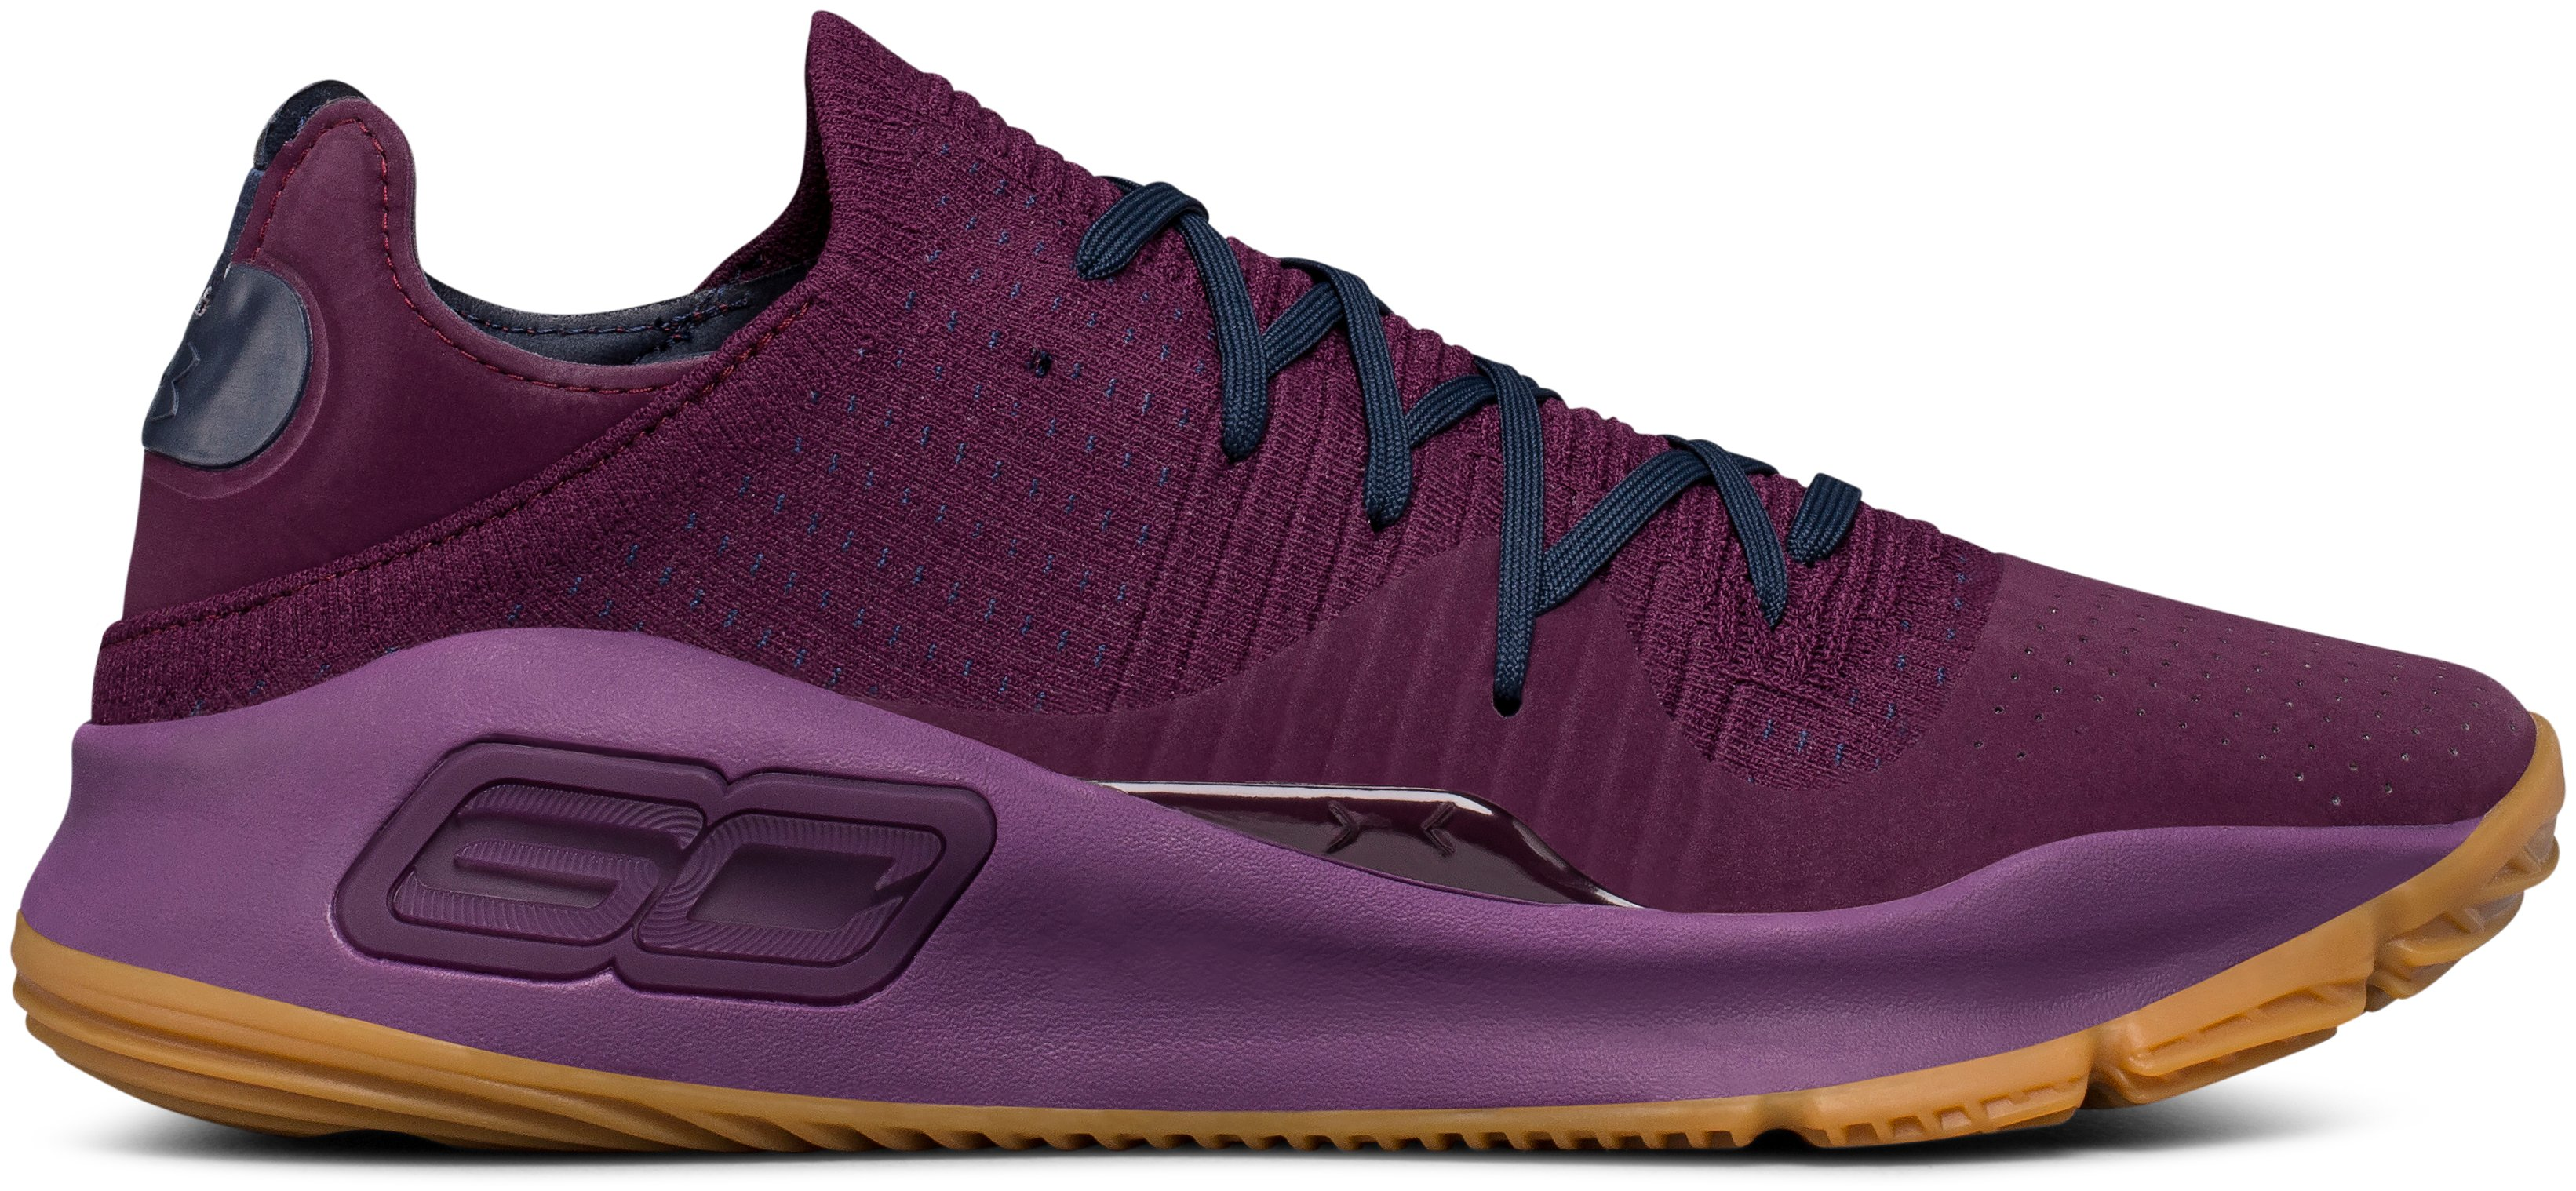 Men's UA Curry 4 Low Basketball Shoes, MERLOT